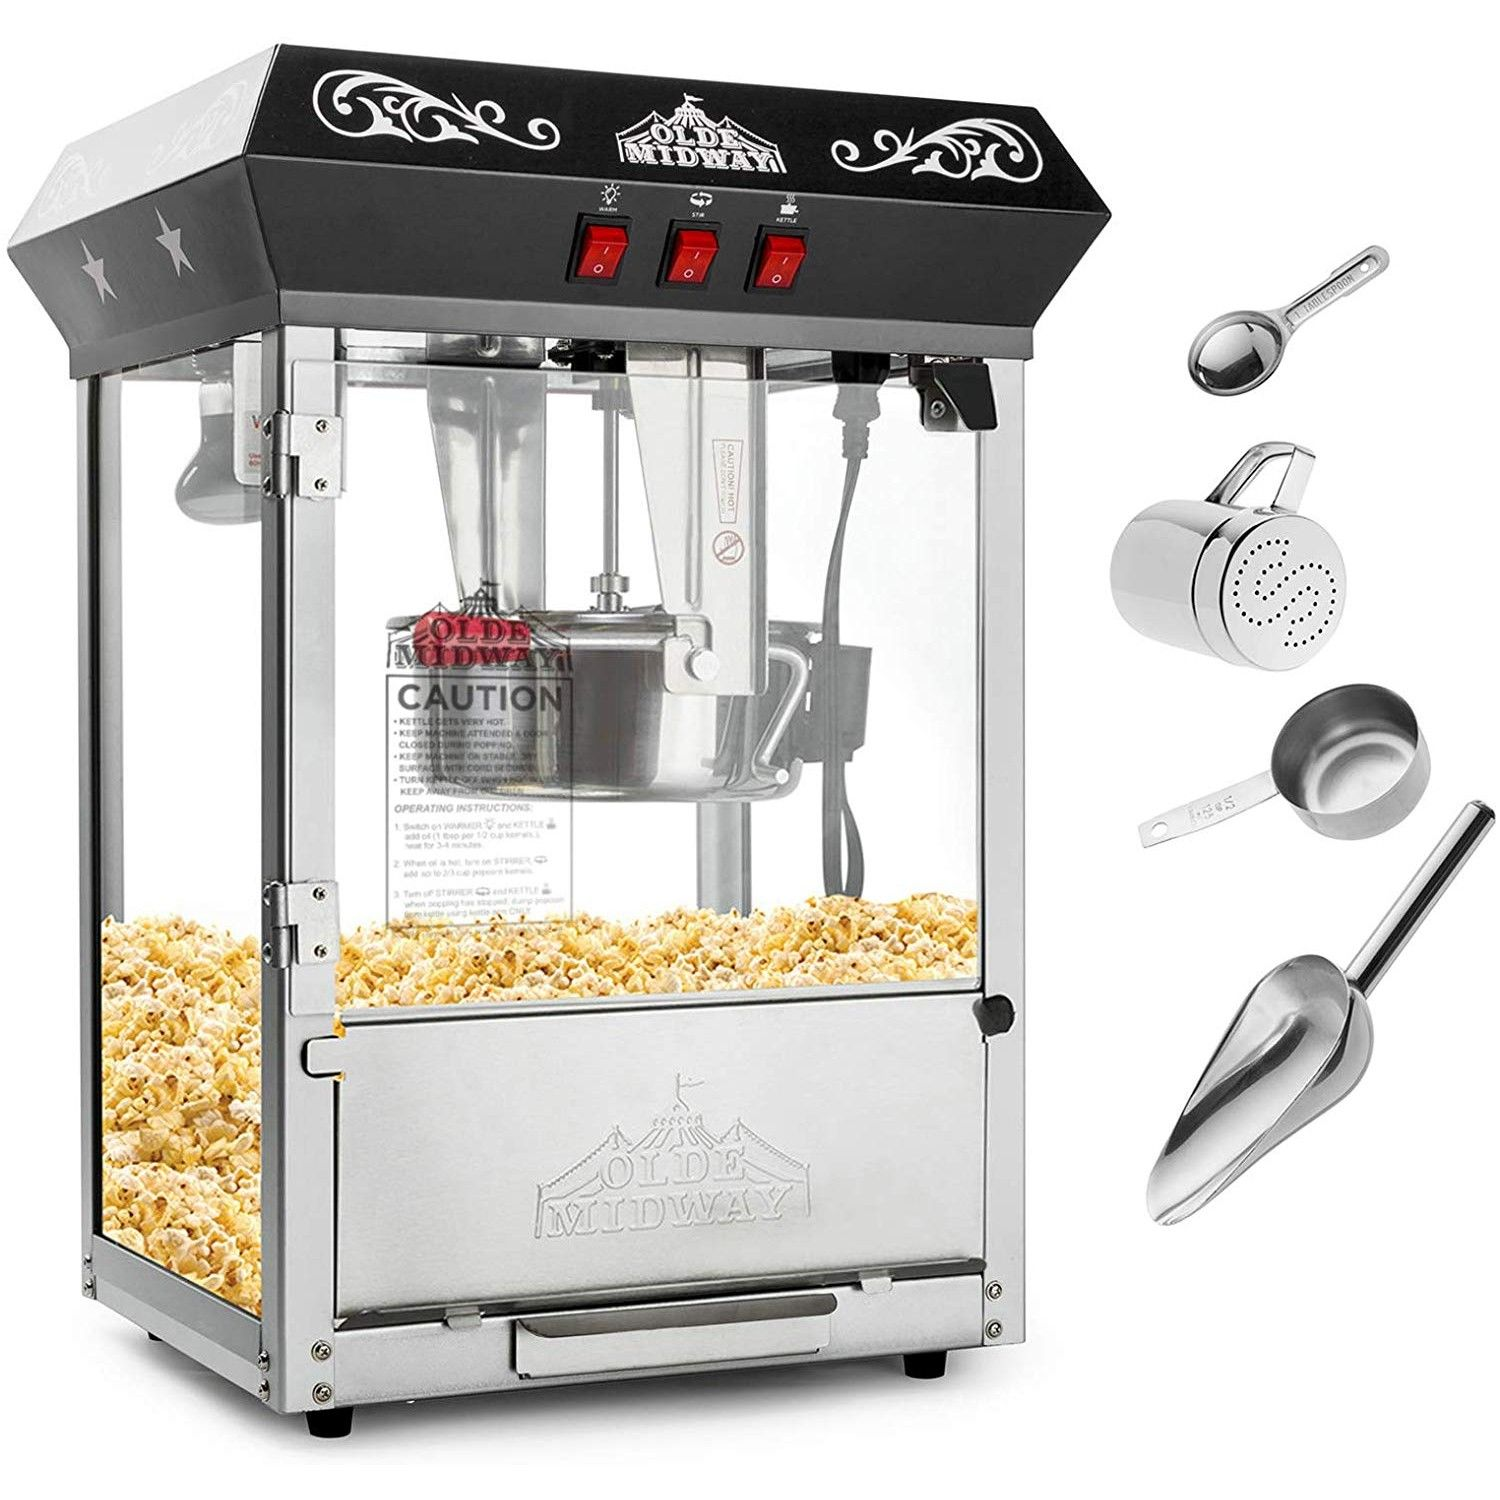 Old School Popcorn Machine Maker Popcorn Best Popcorn Kettle